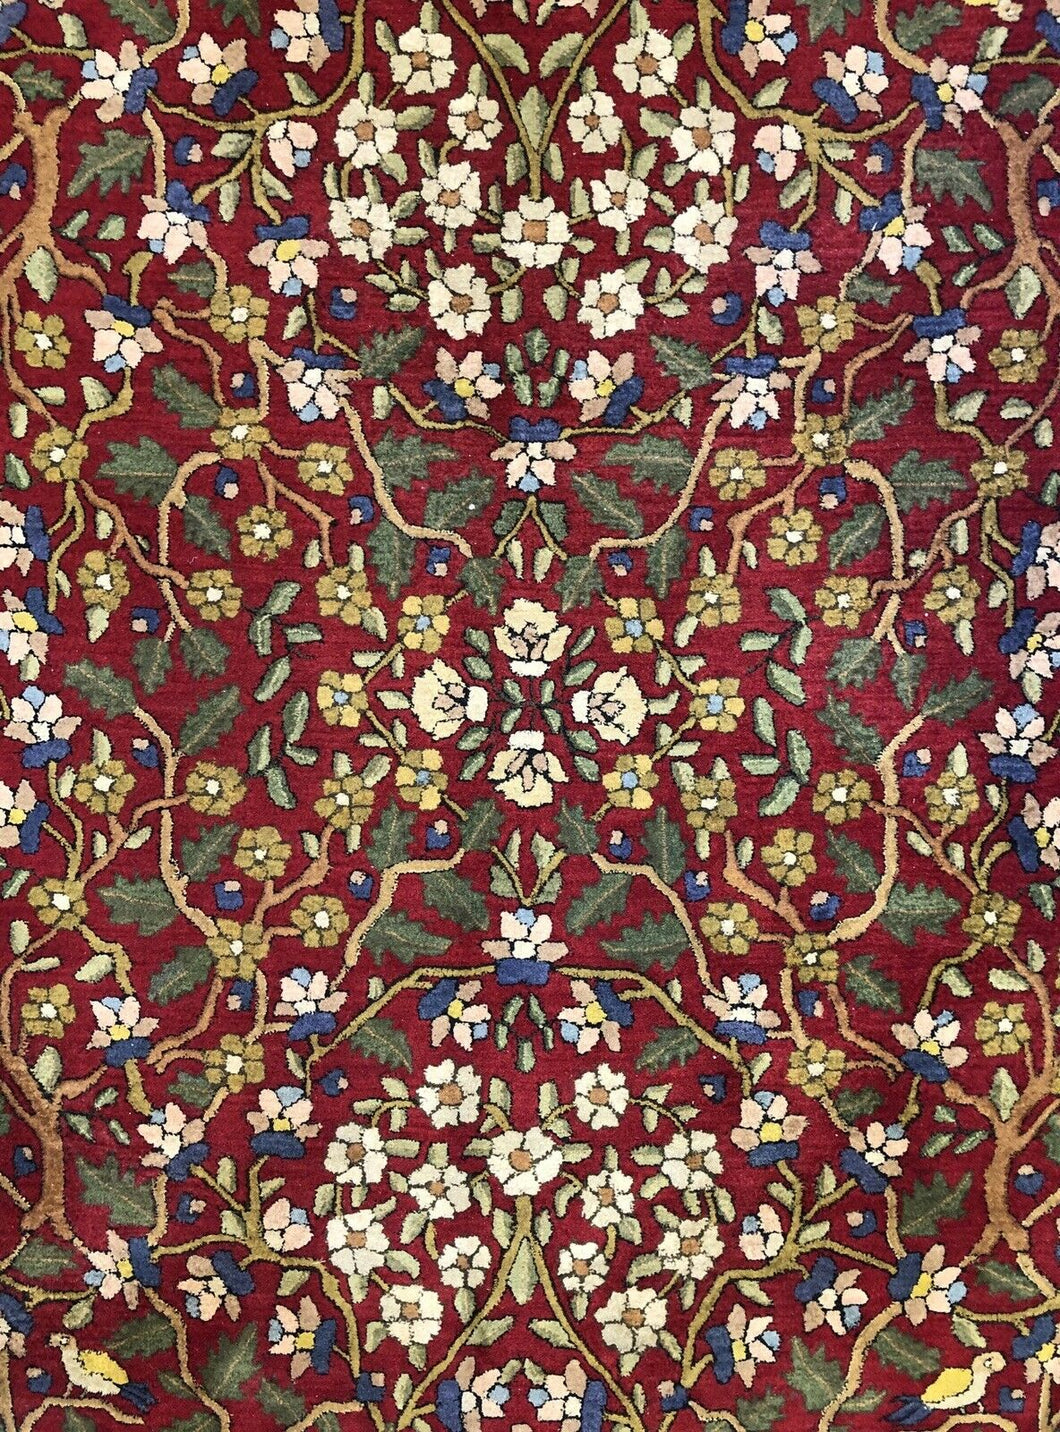 Tremendous Tetex - 1940s Antique German Rug - Hooked Carpet - 8'3